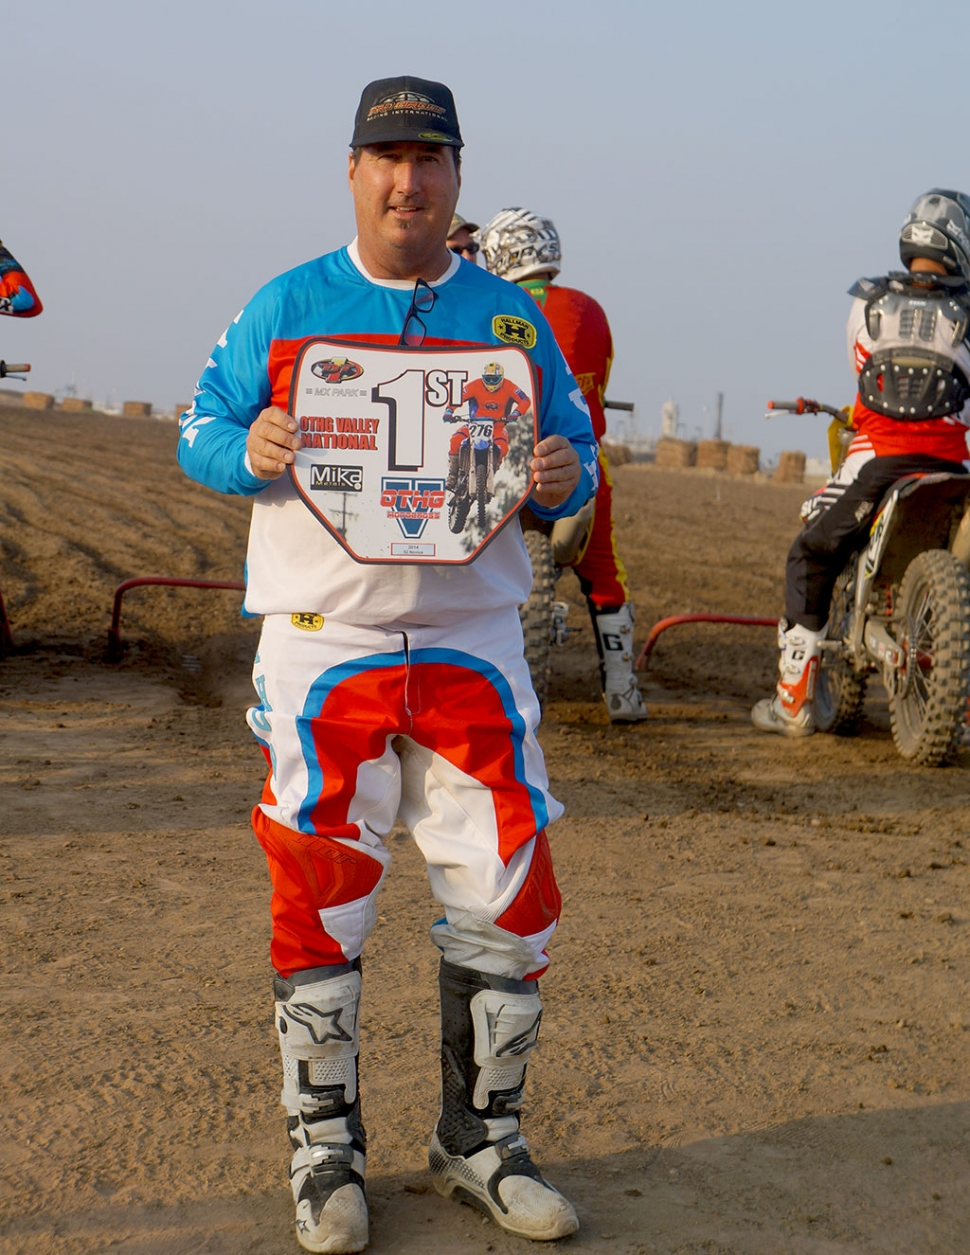 Greg Boren wins 450 c class at the othg nationals in Tulare CA on 11/9/2014. Its been a great year. I would like to thank my family for their support and Kenny at Bto sports and Jeff at thousand oaks power sports for all your support.